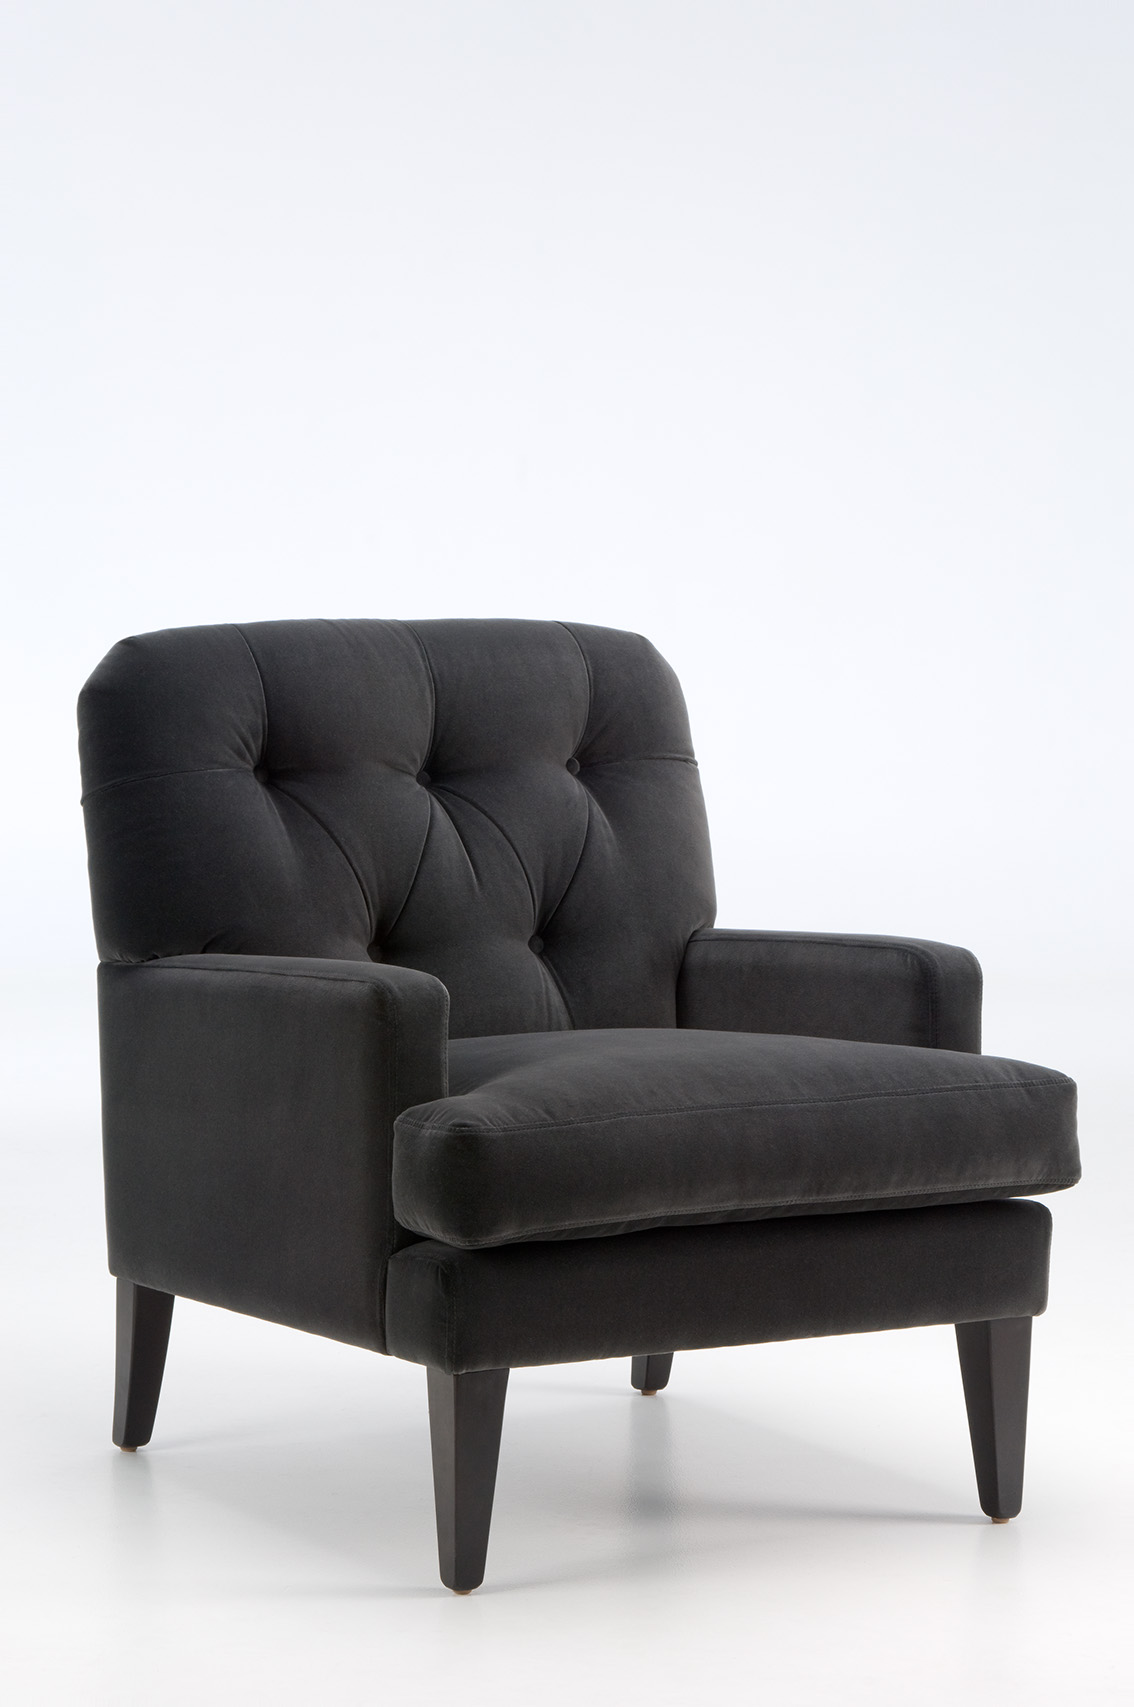 AMIEE SOFT CHAIR buttoned style - David Shaw bespoke furniture New Zealand